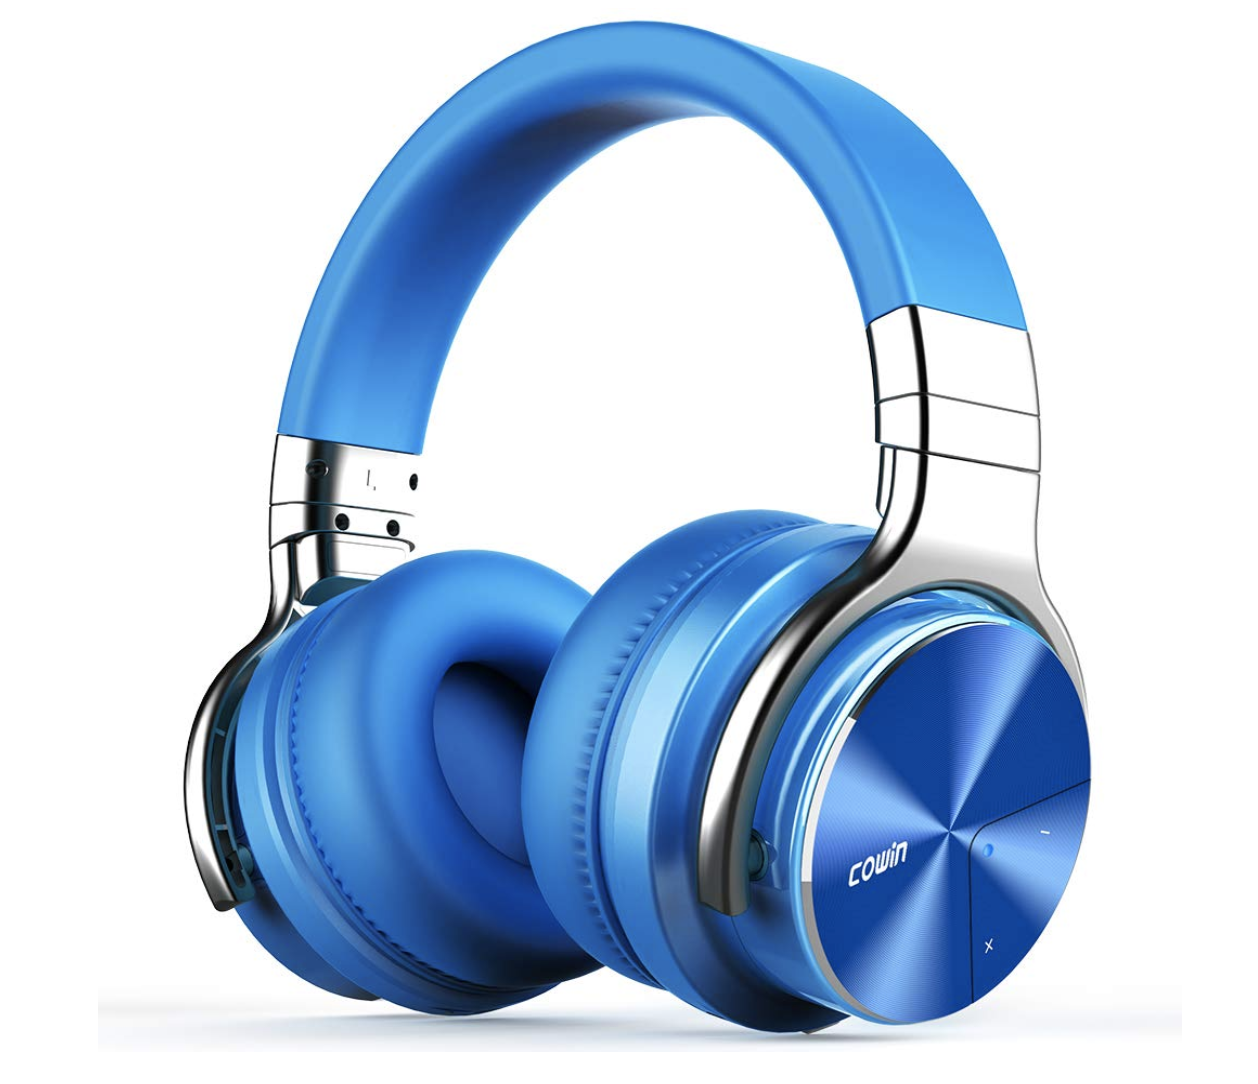 Conwin E7 Pro Active Noise Cancelling and Bluetooth Headphones